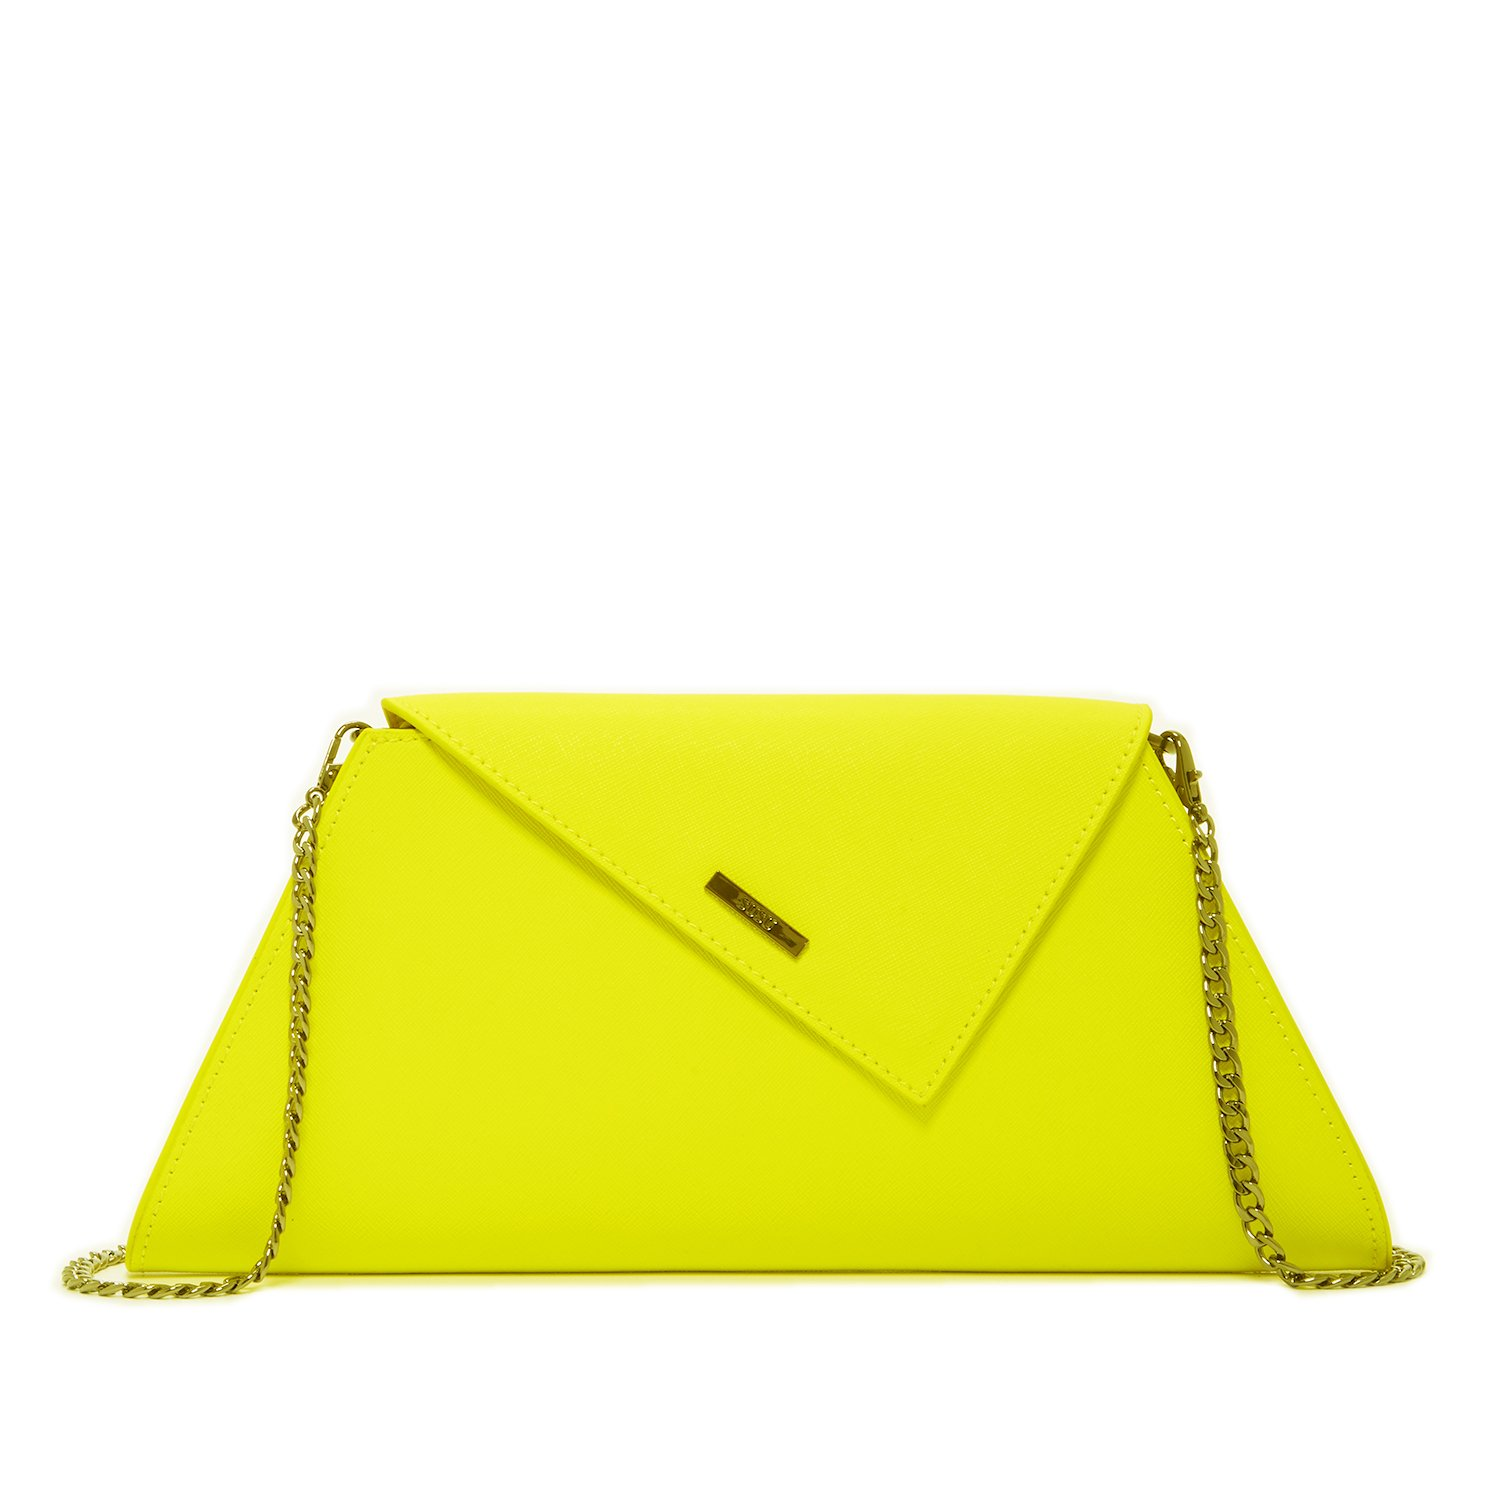 Yellow Purse Clutches for Women - Leather Evening Bag Lemon Summer Clutch for Wedding Bridal Gift Purses Designer Fashion Handbags Ladies Minimalist Envelope Bags with Crossbody Shoulder Chain Strap